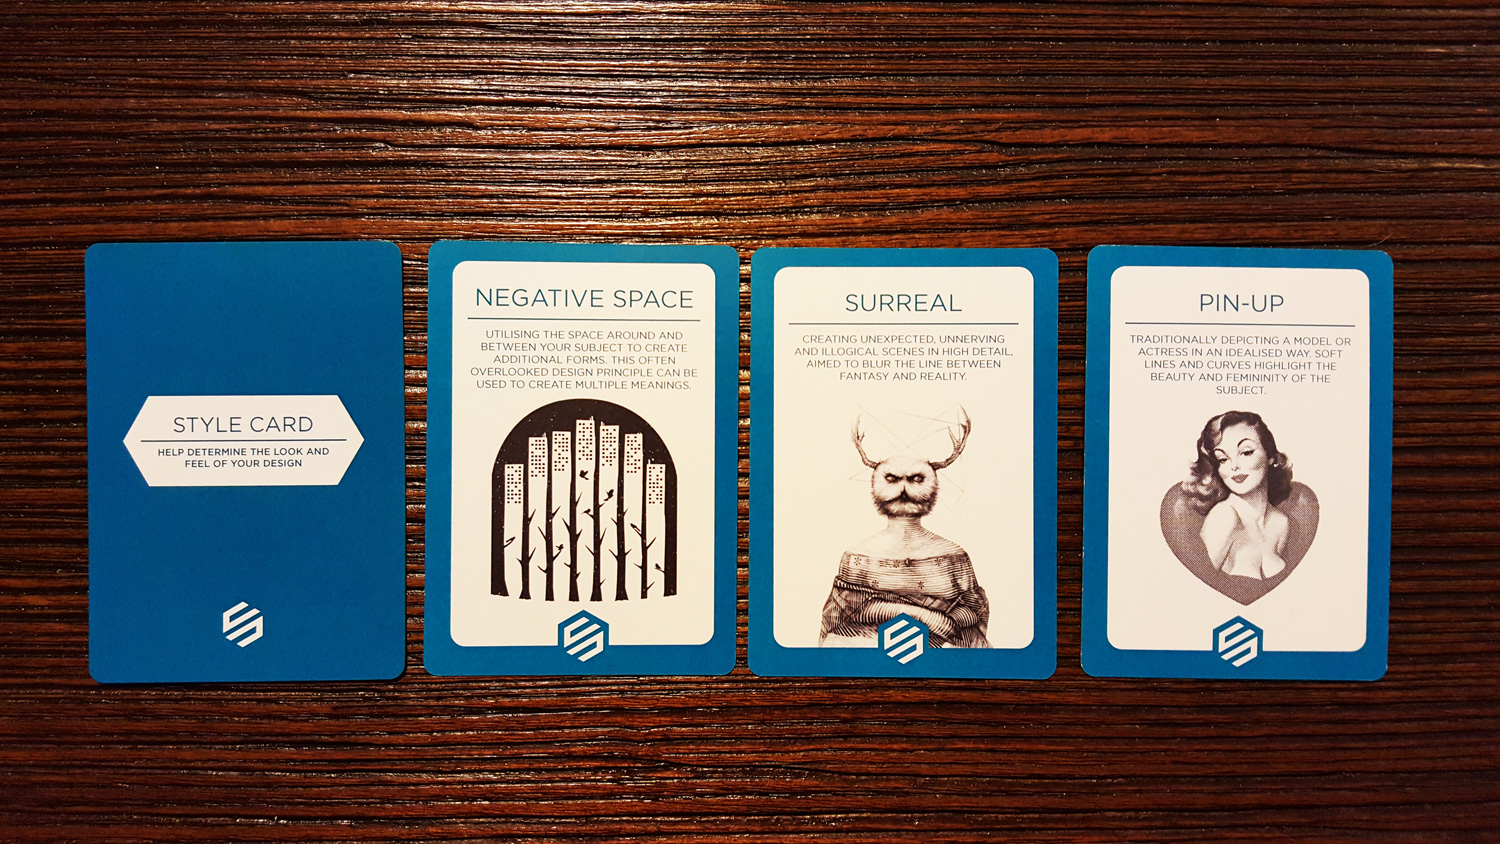 There are 30 style cards total. Each card has a unique graphic/illustration that describes the style.These 3 are some of my favorites in the deck.